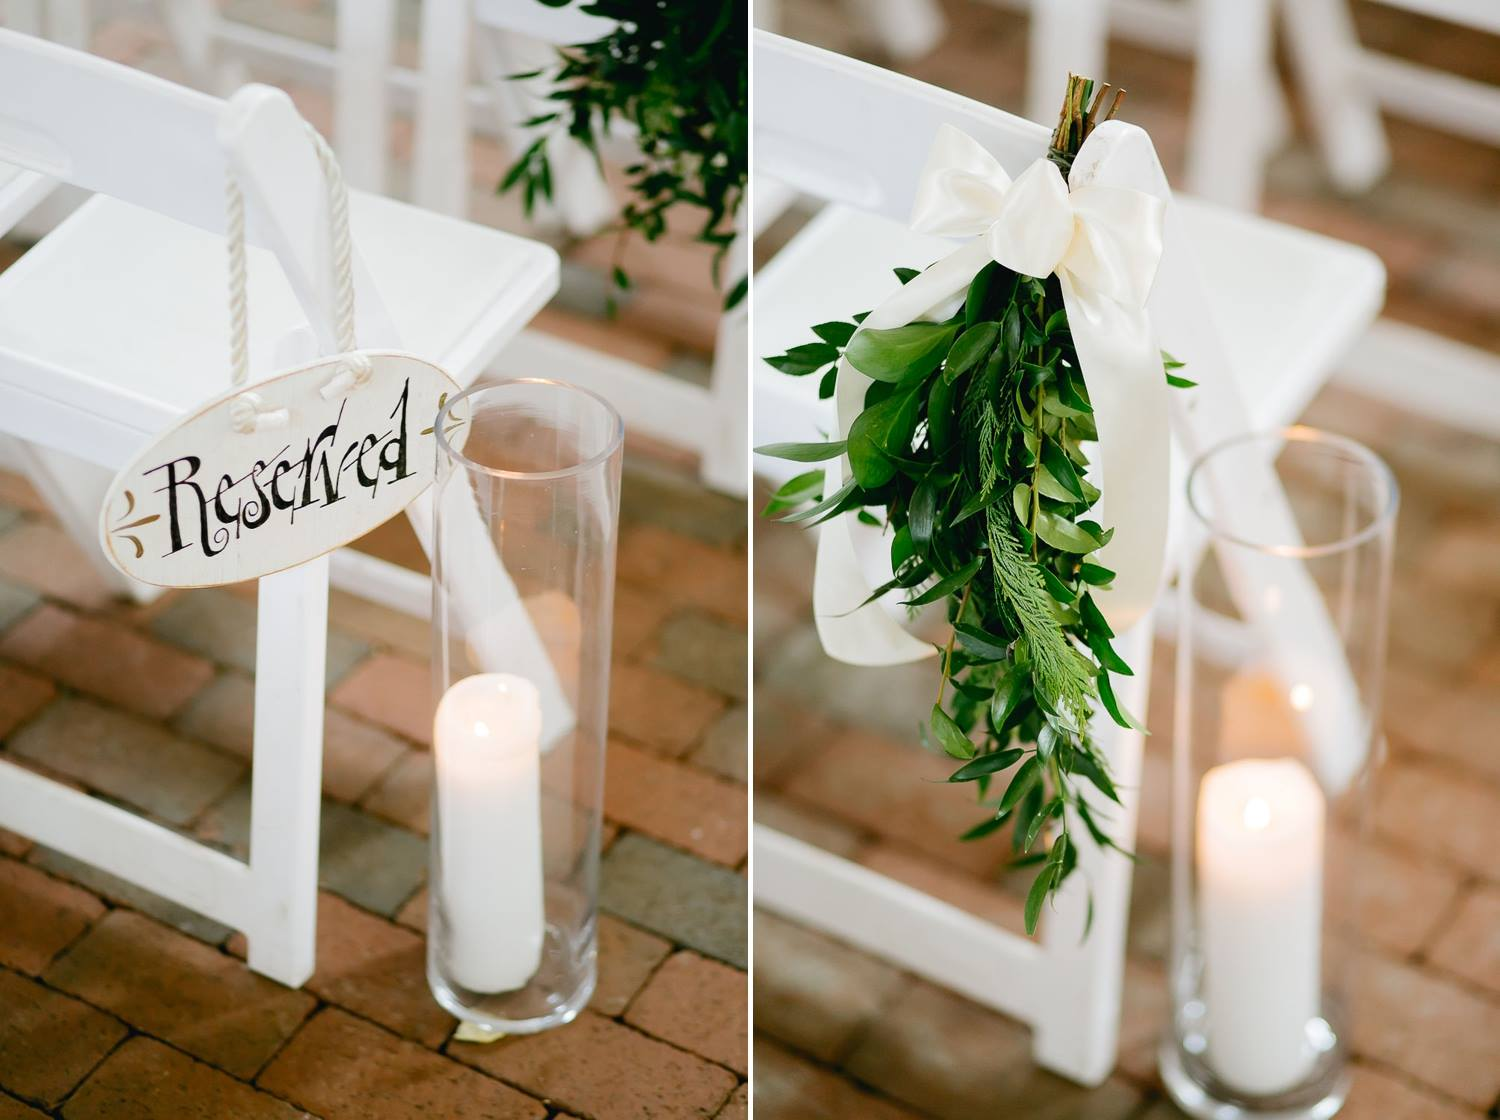 A rustic chic ceremony isn't complete without plenty of greenery and candles. Find out how to use this style for a garden wedding on our blog right now!